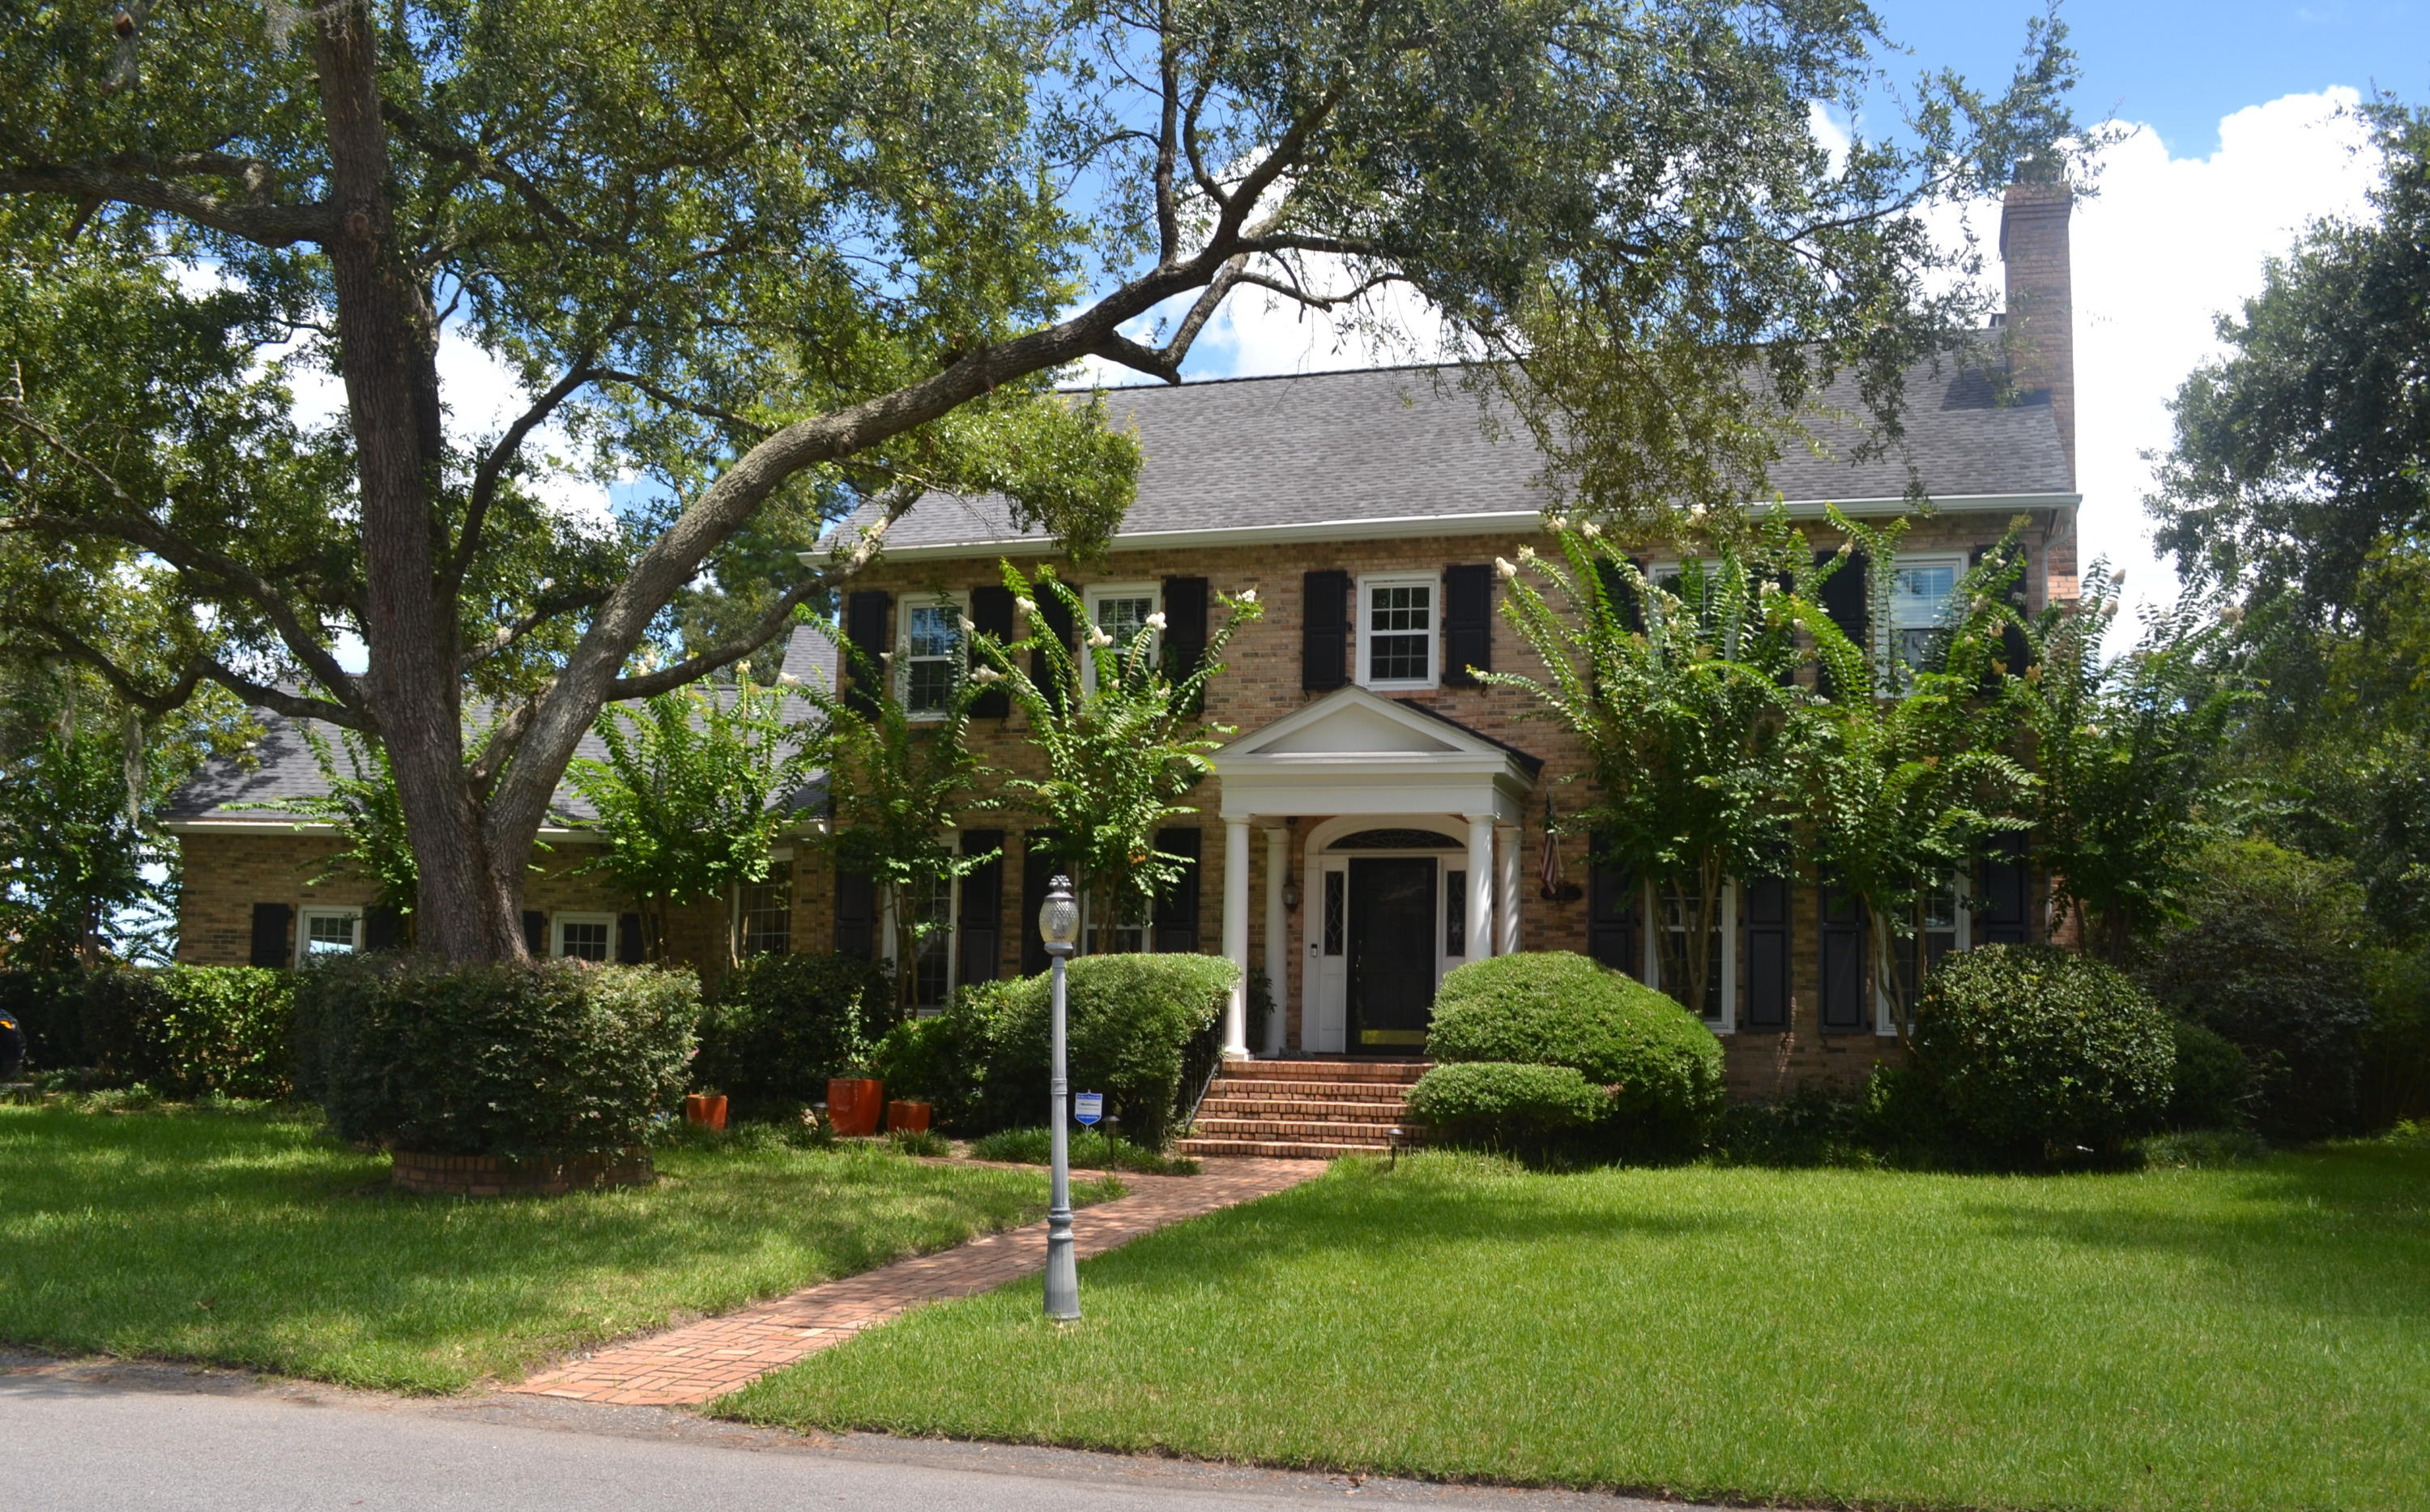 Photo of 13 Leichester Rd, Charleston, SC 29407